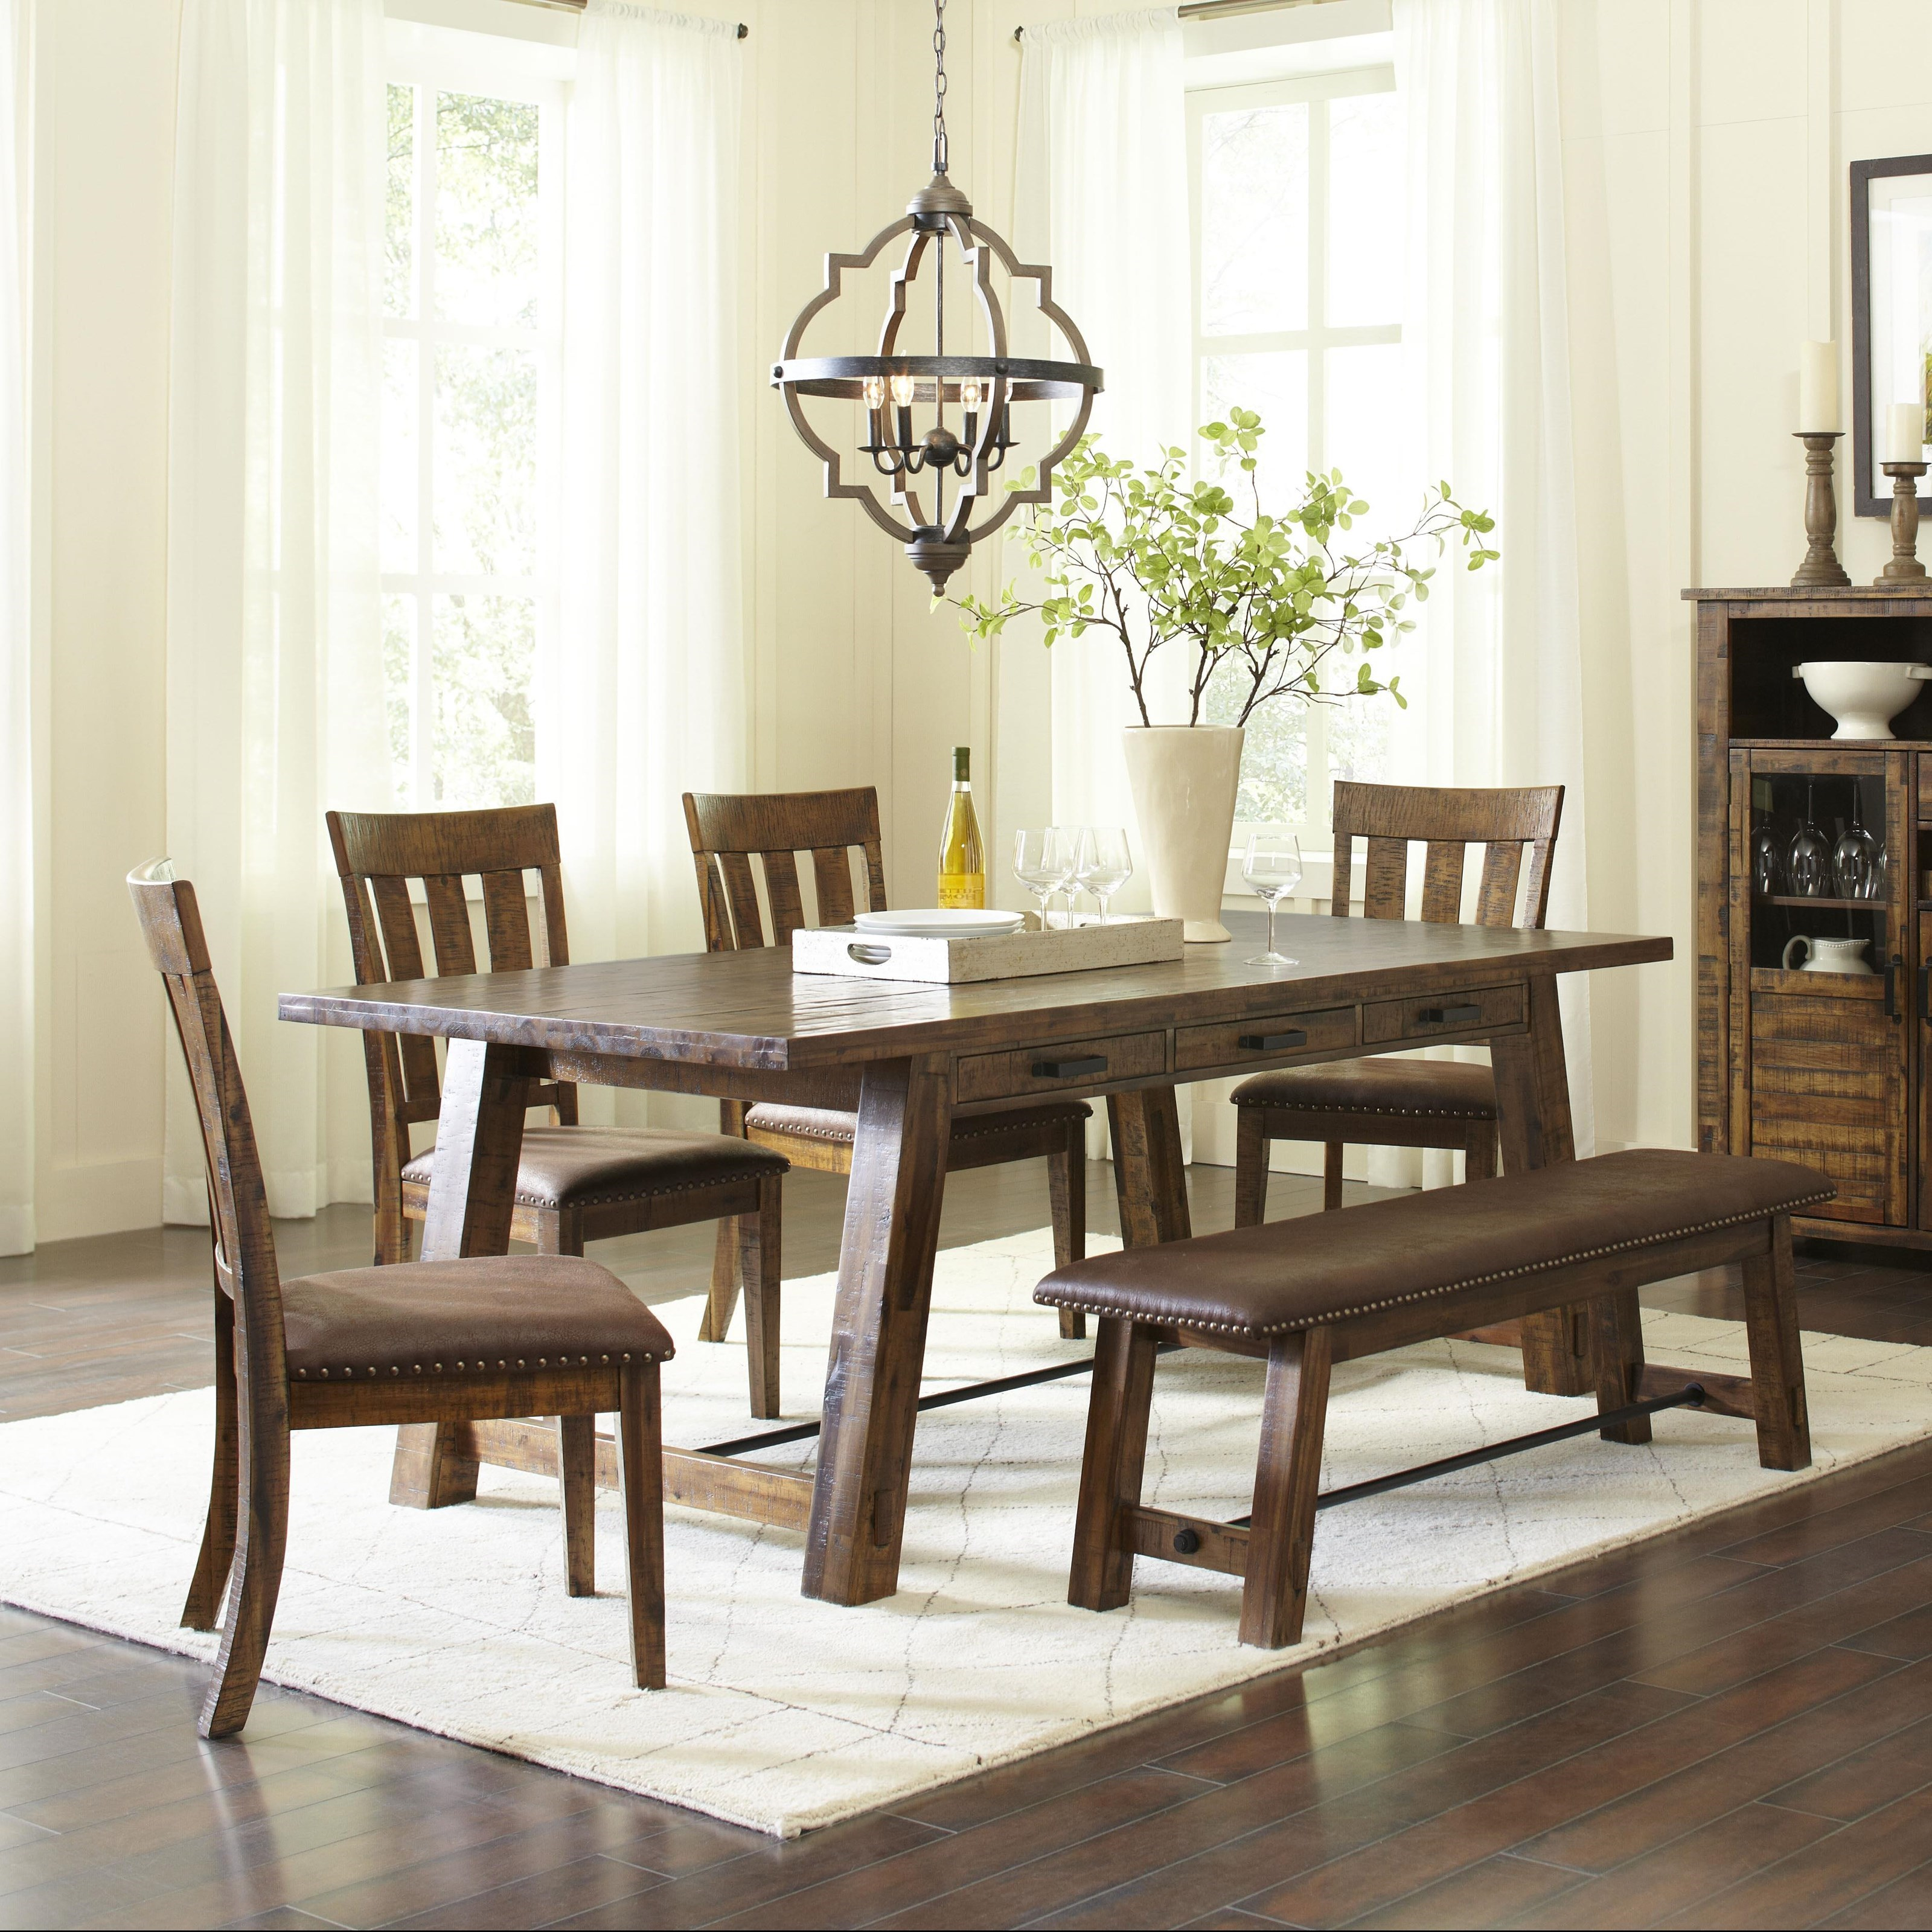 Jofran Cannon Valley Trestle Dining Table And Chair Bench Set Jofran